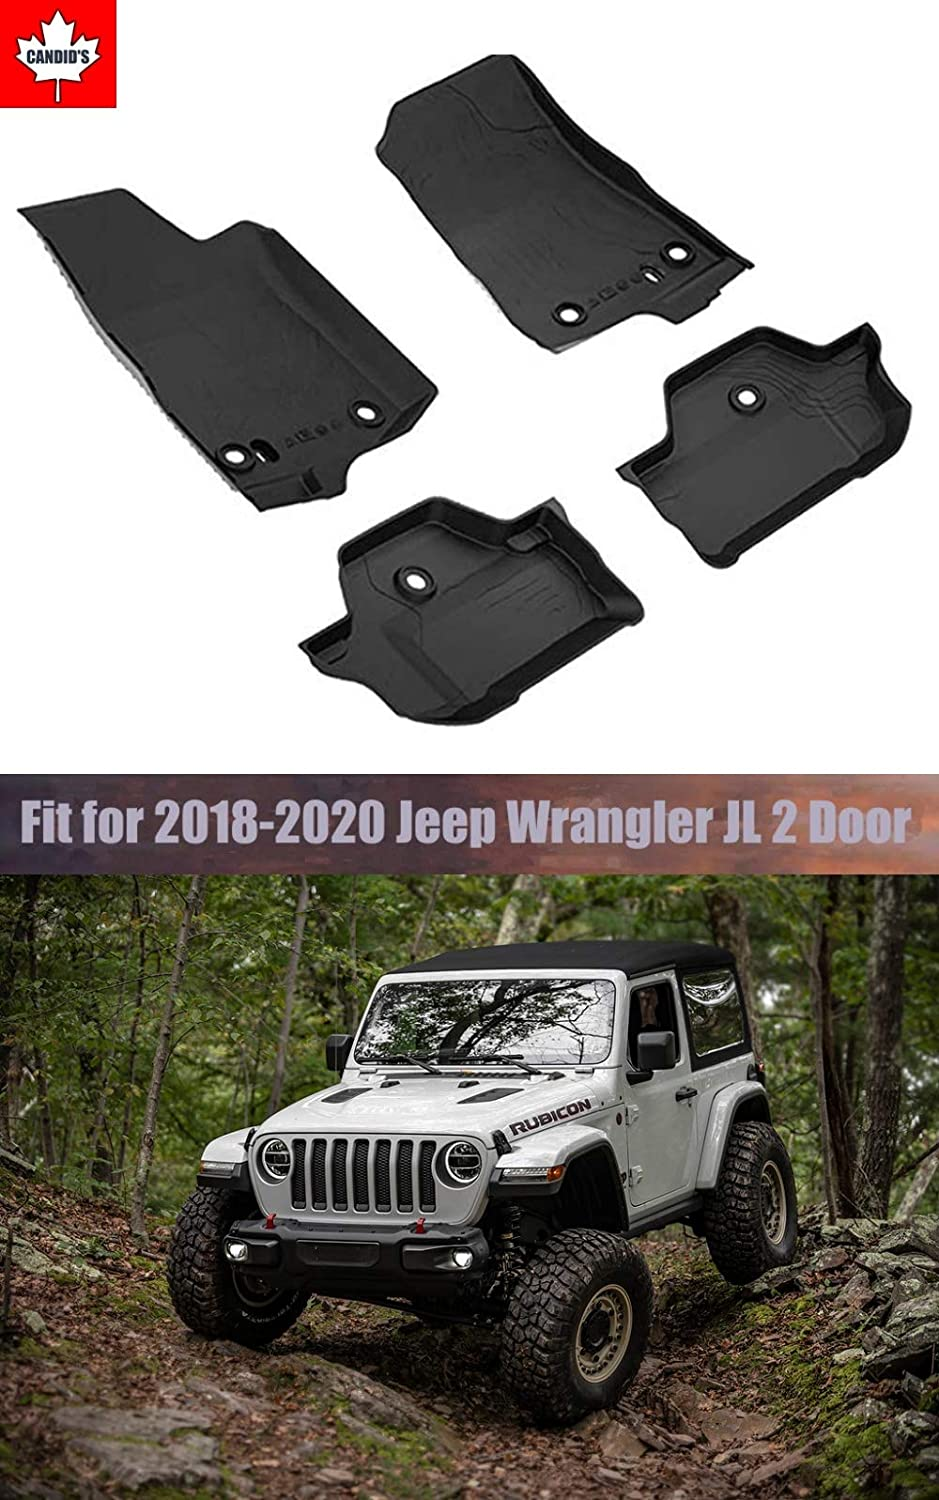 Floor Mats for Jeep Wrangler JL 2-Door 2018-2019-2020 All Weather Guard 1st and 2nd Row Mat TPE Slush Liners